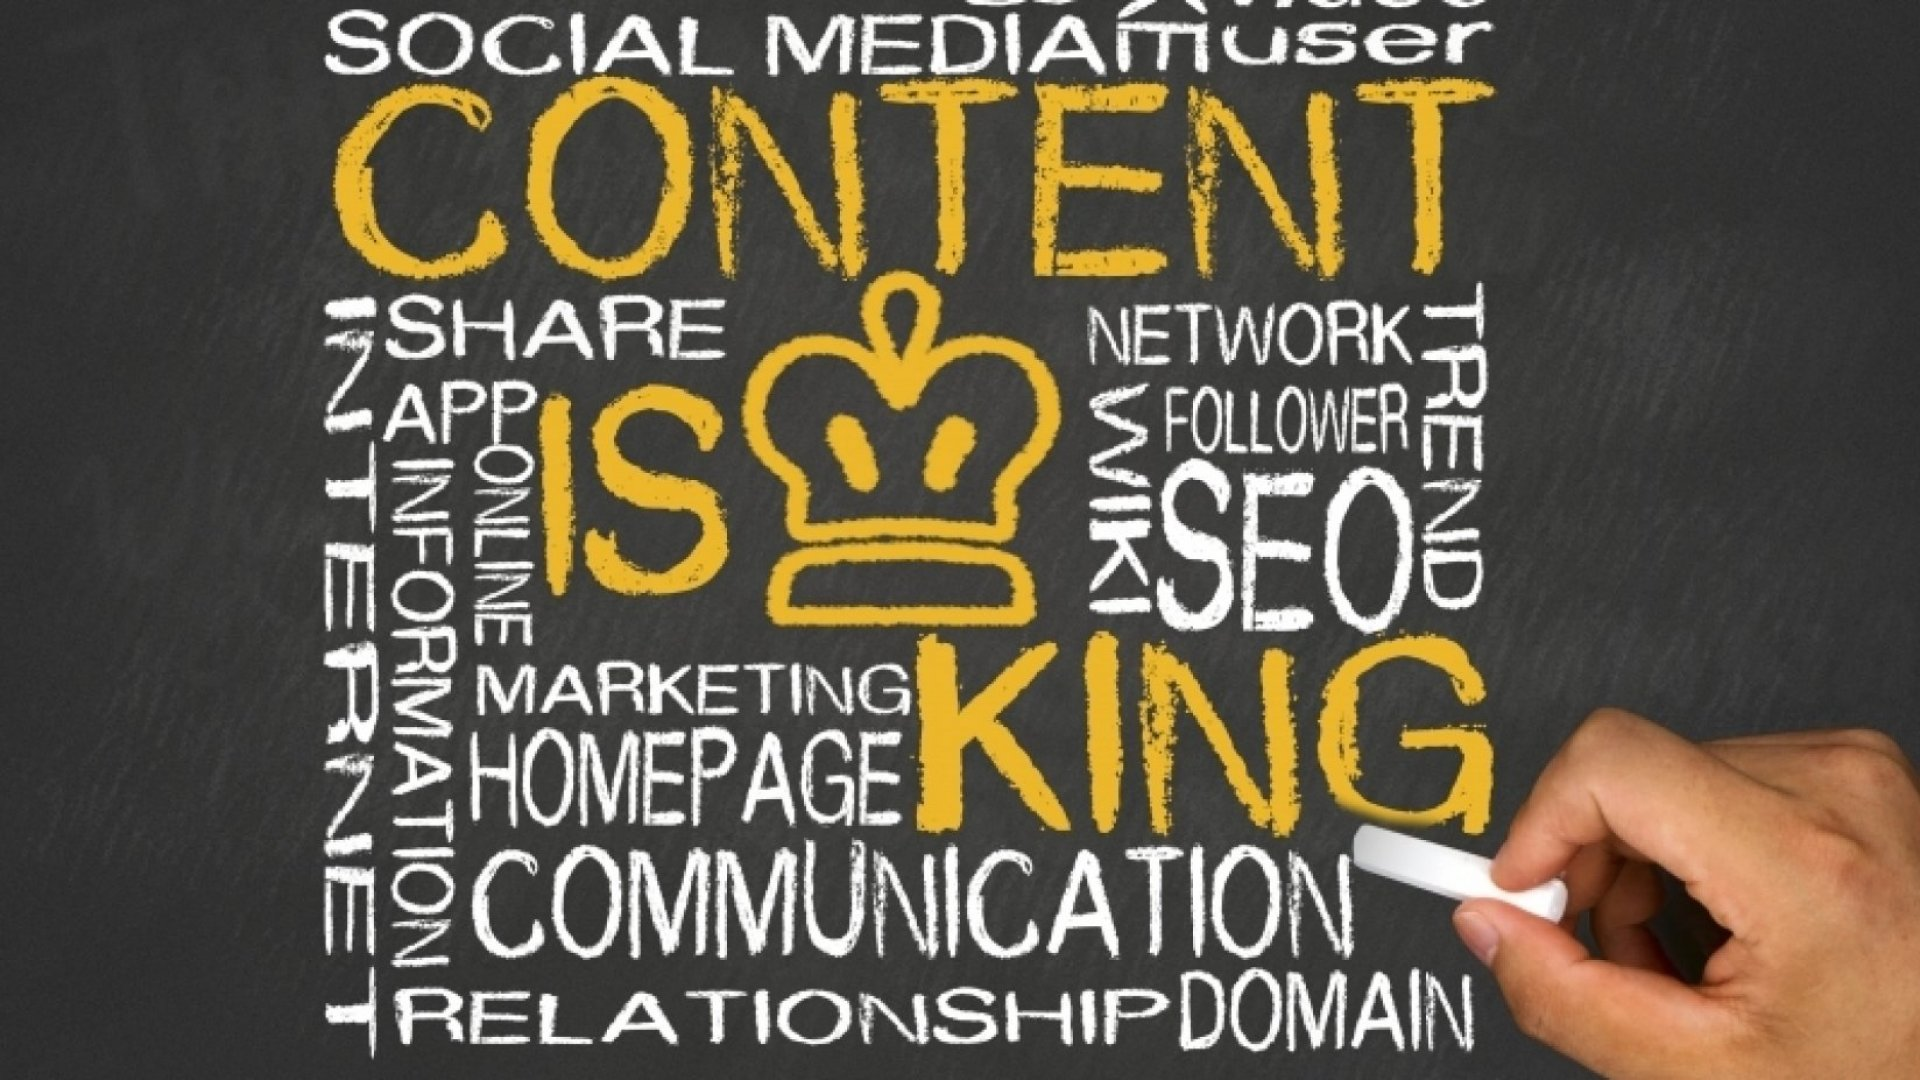 4 Things You Didn't Know About the Crazy Growth of Content Marketing